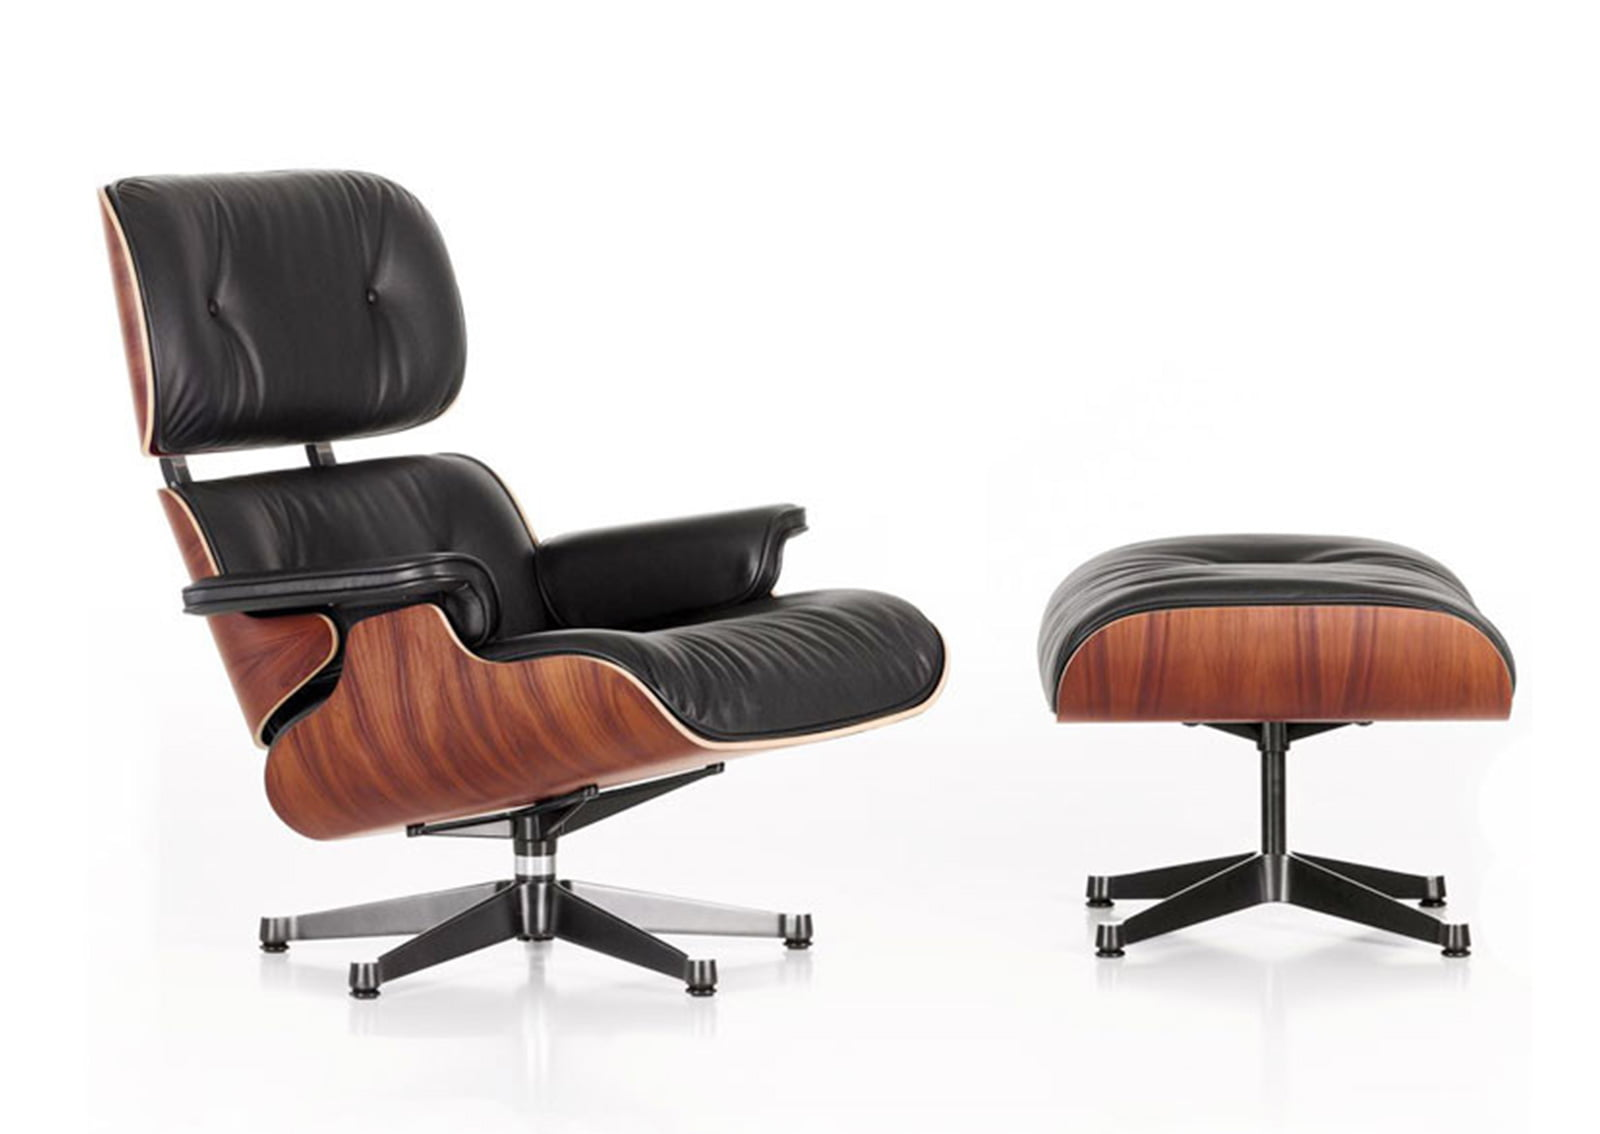 Eanes Chair Eames Chairs Eames Lounge Chair With Ottoman Furnishplus